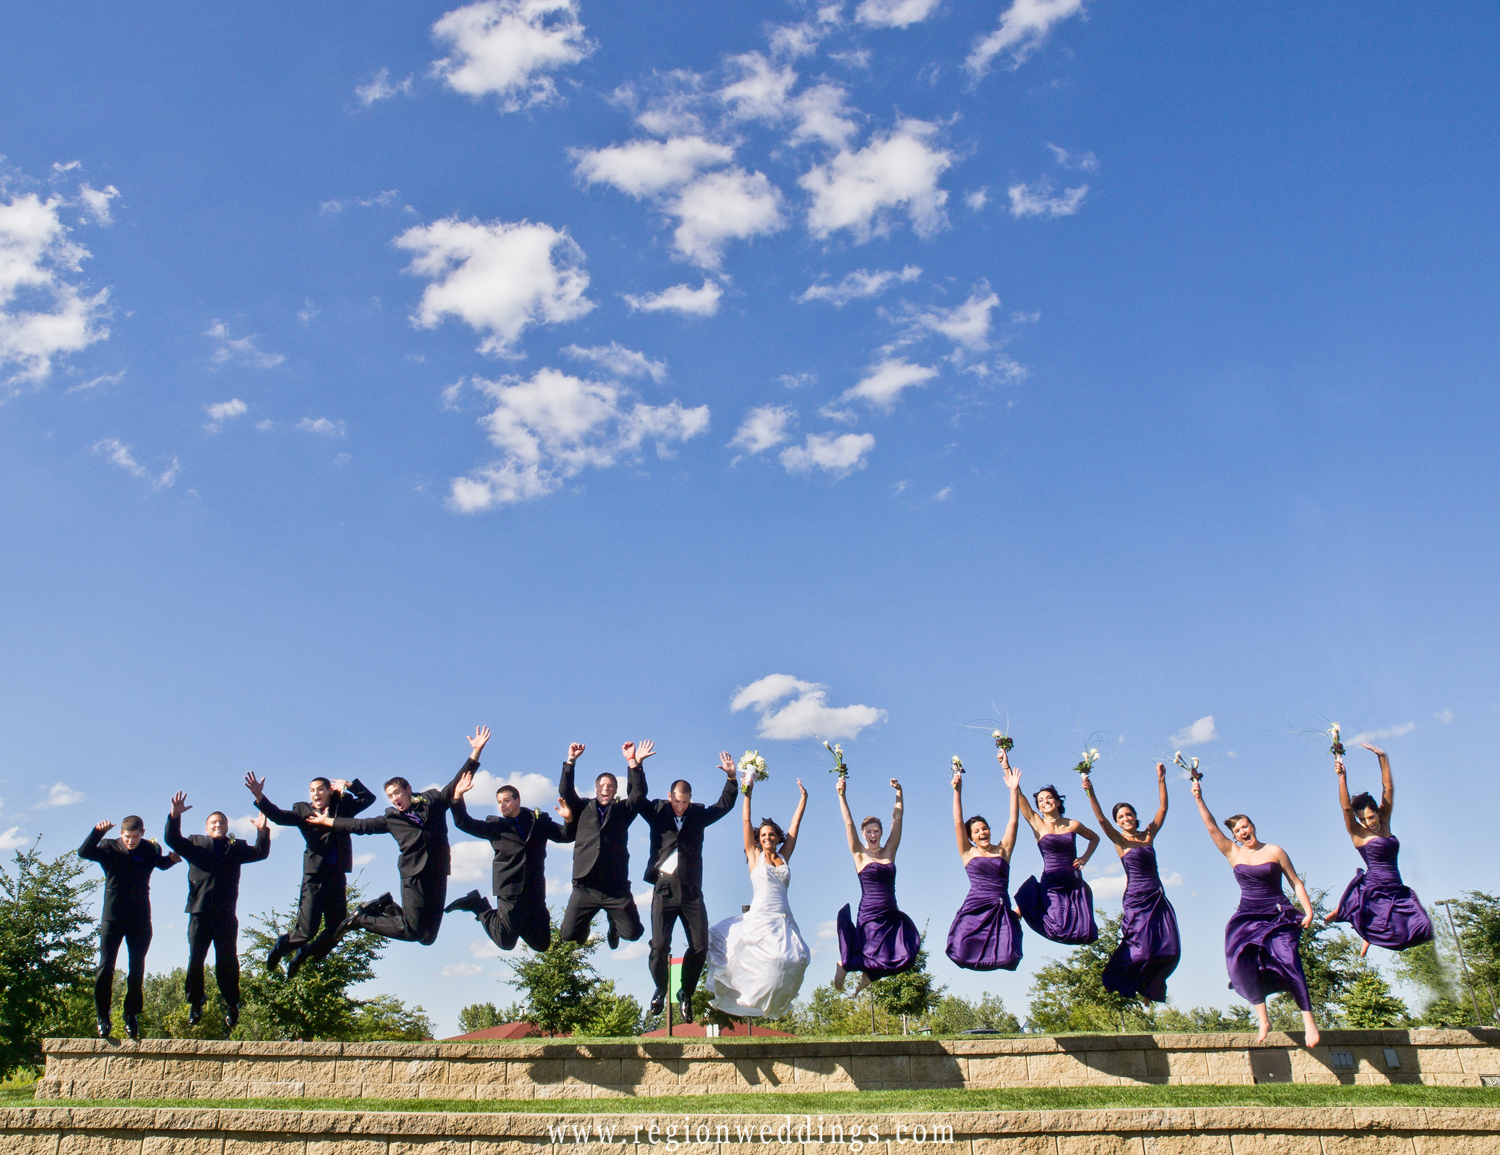 The classic wedding party jumping shot.